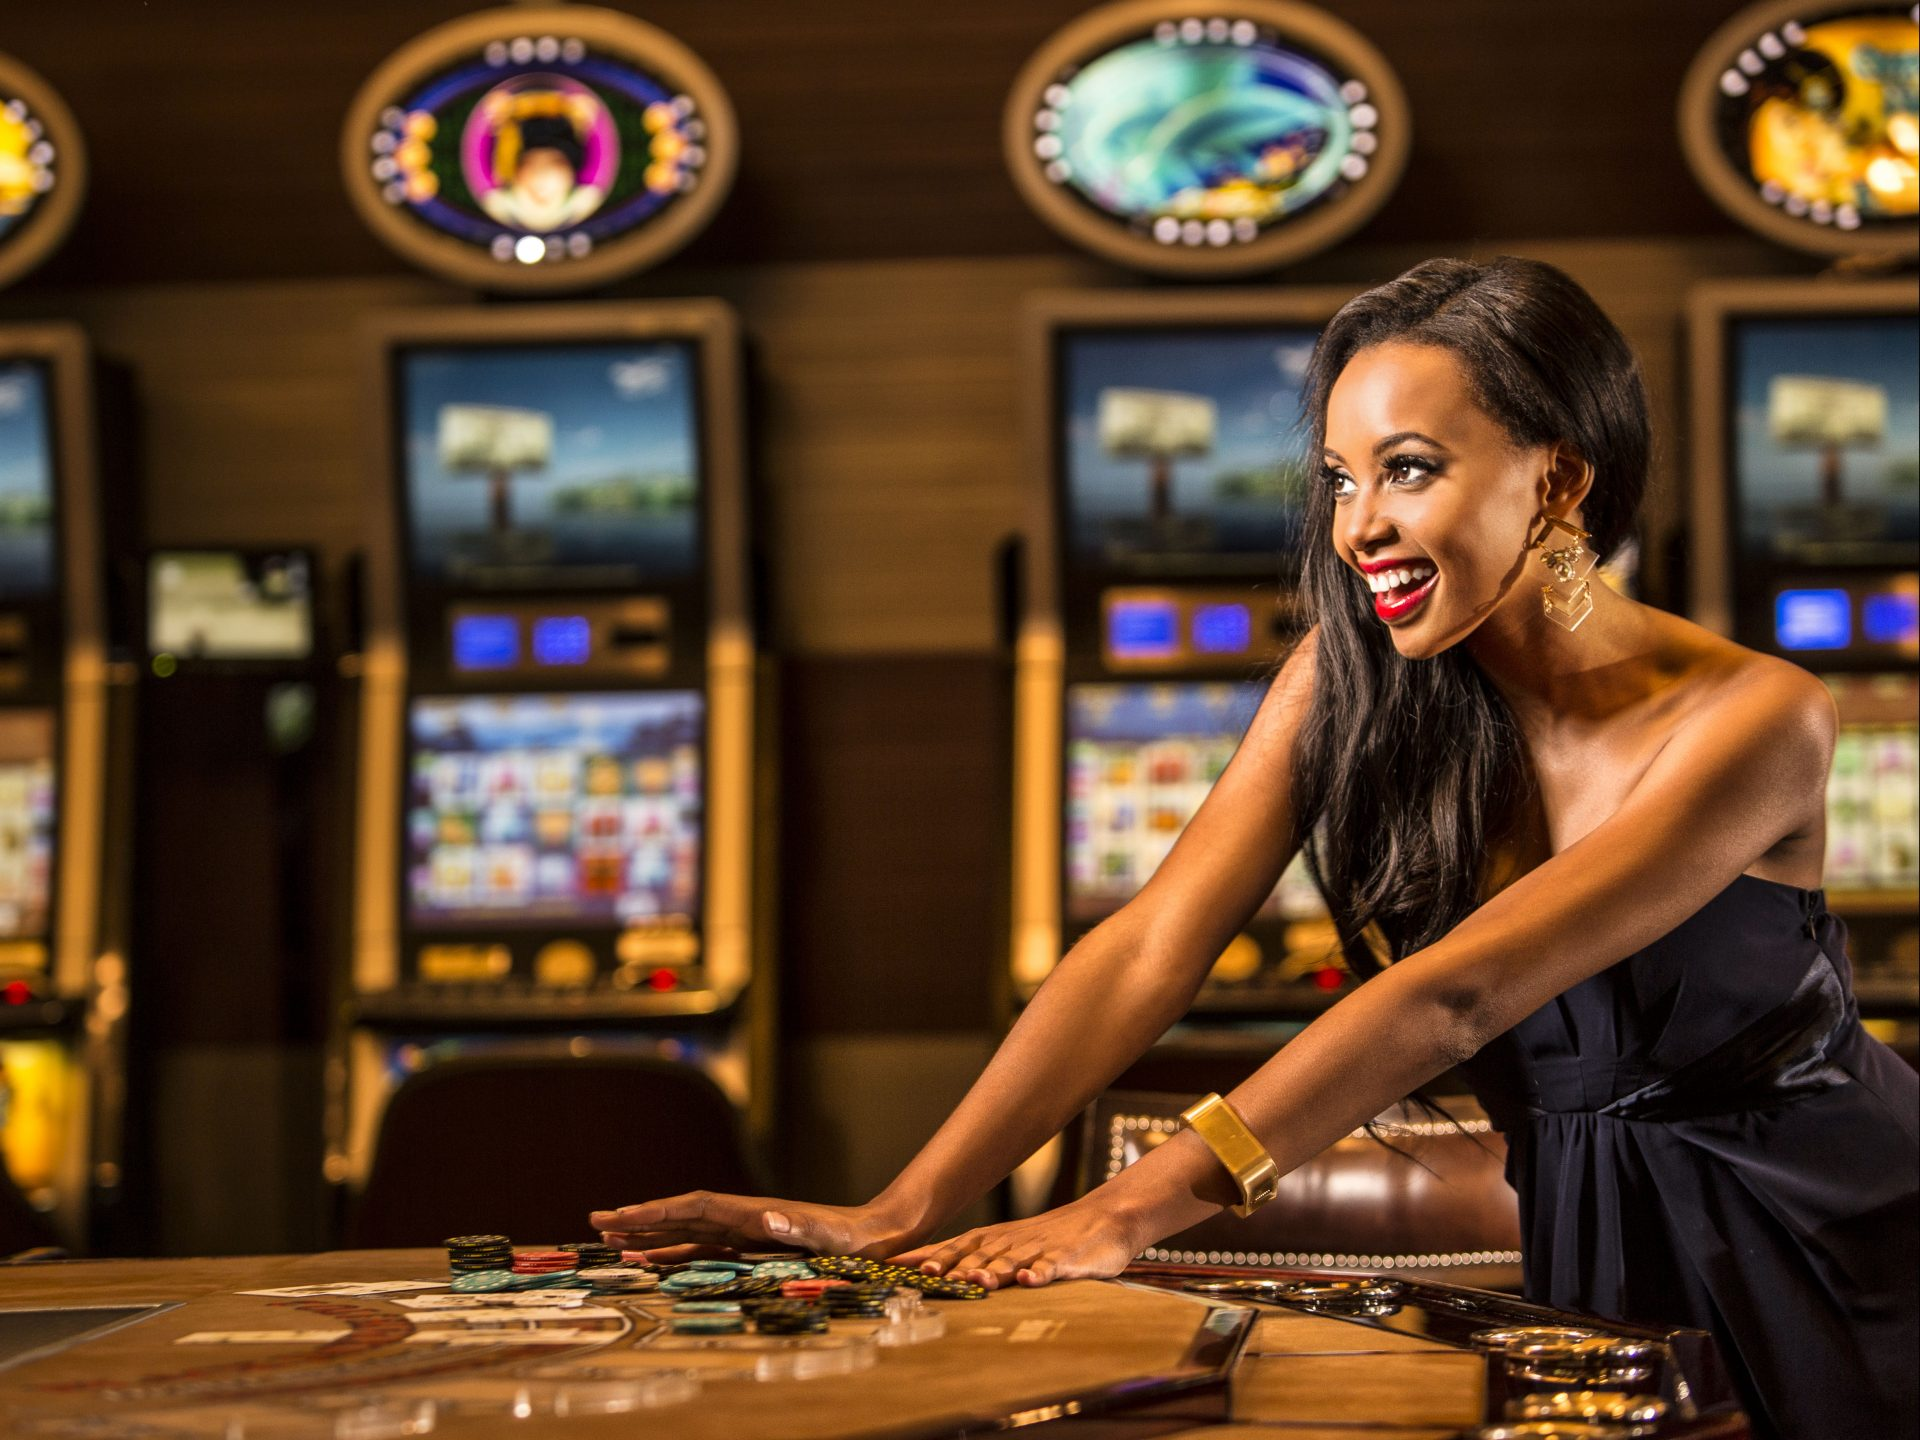 Lady winning at casino table games with slot machines behind her